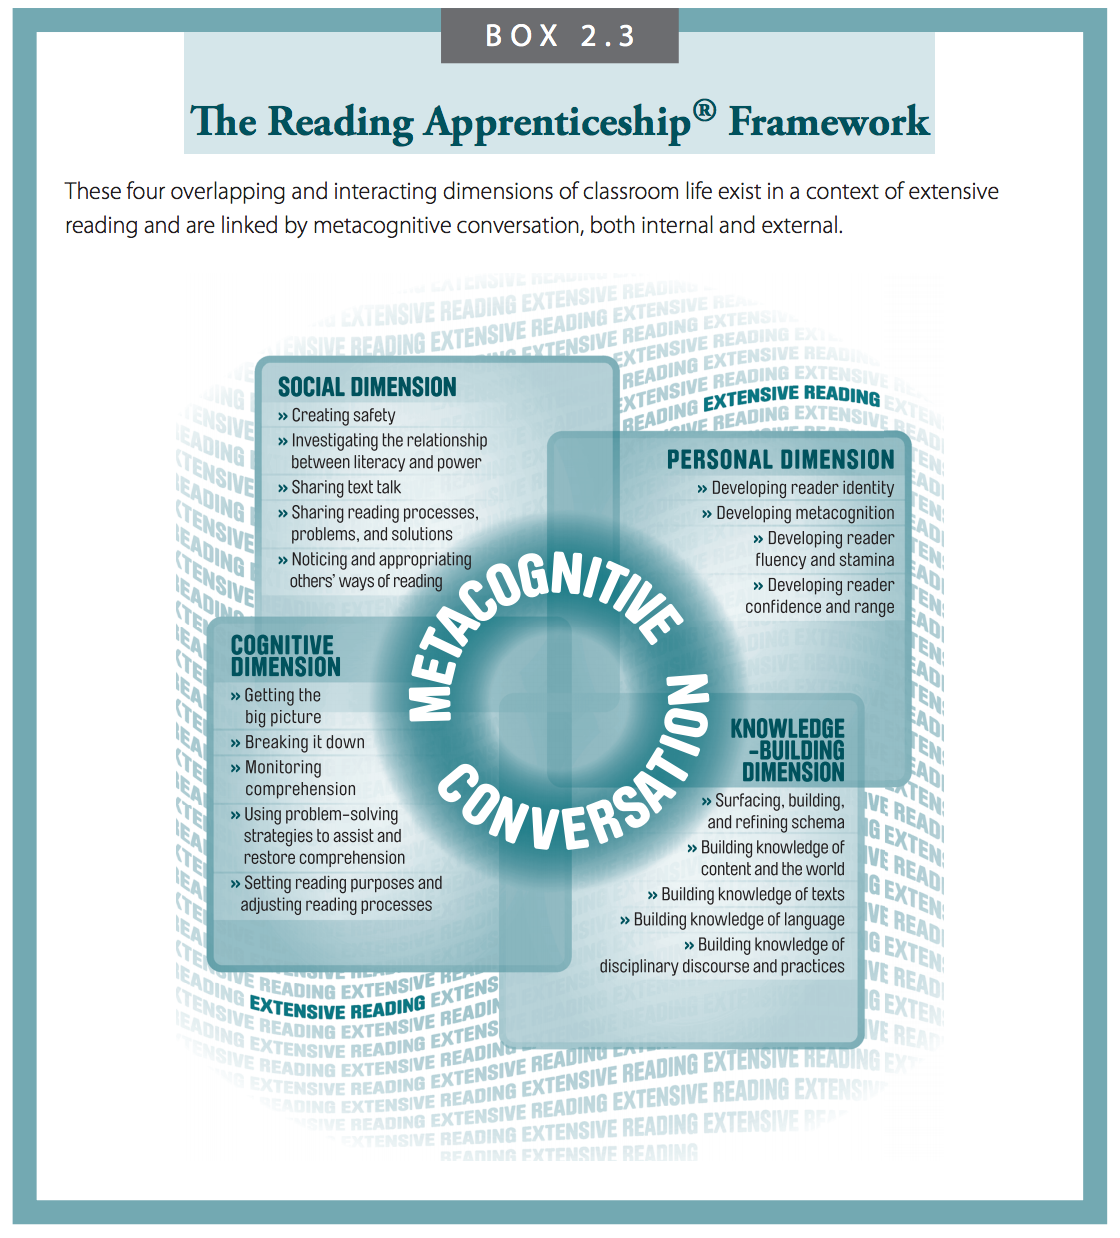 cognitive dimension of the reading apprenticeship Reading apprenticeship mn they develop a self-awareness as readers and set their purposes and goals for improving their academic reading cognitive dimension.